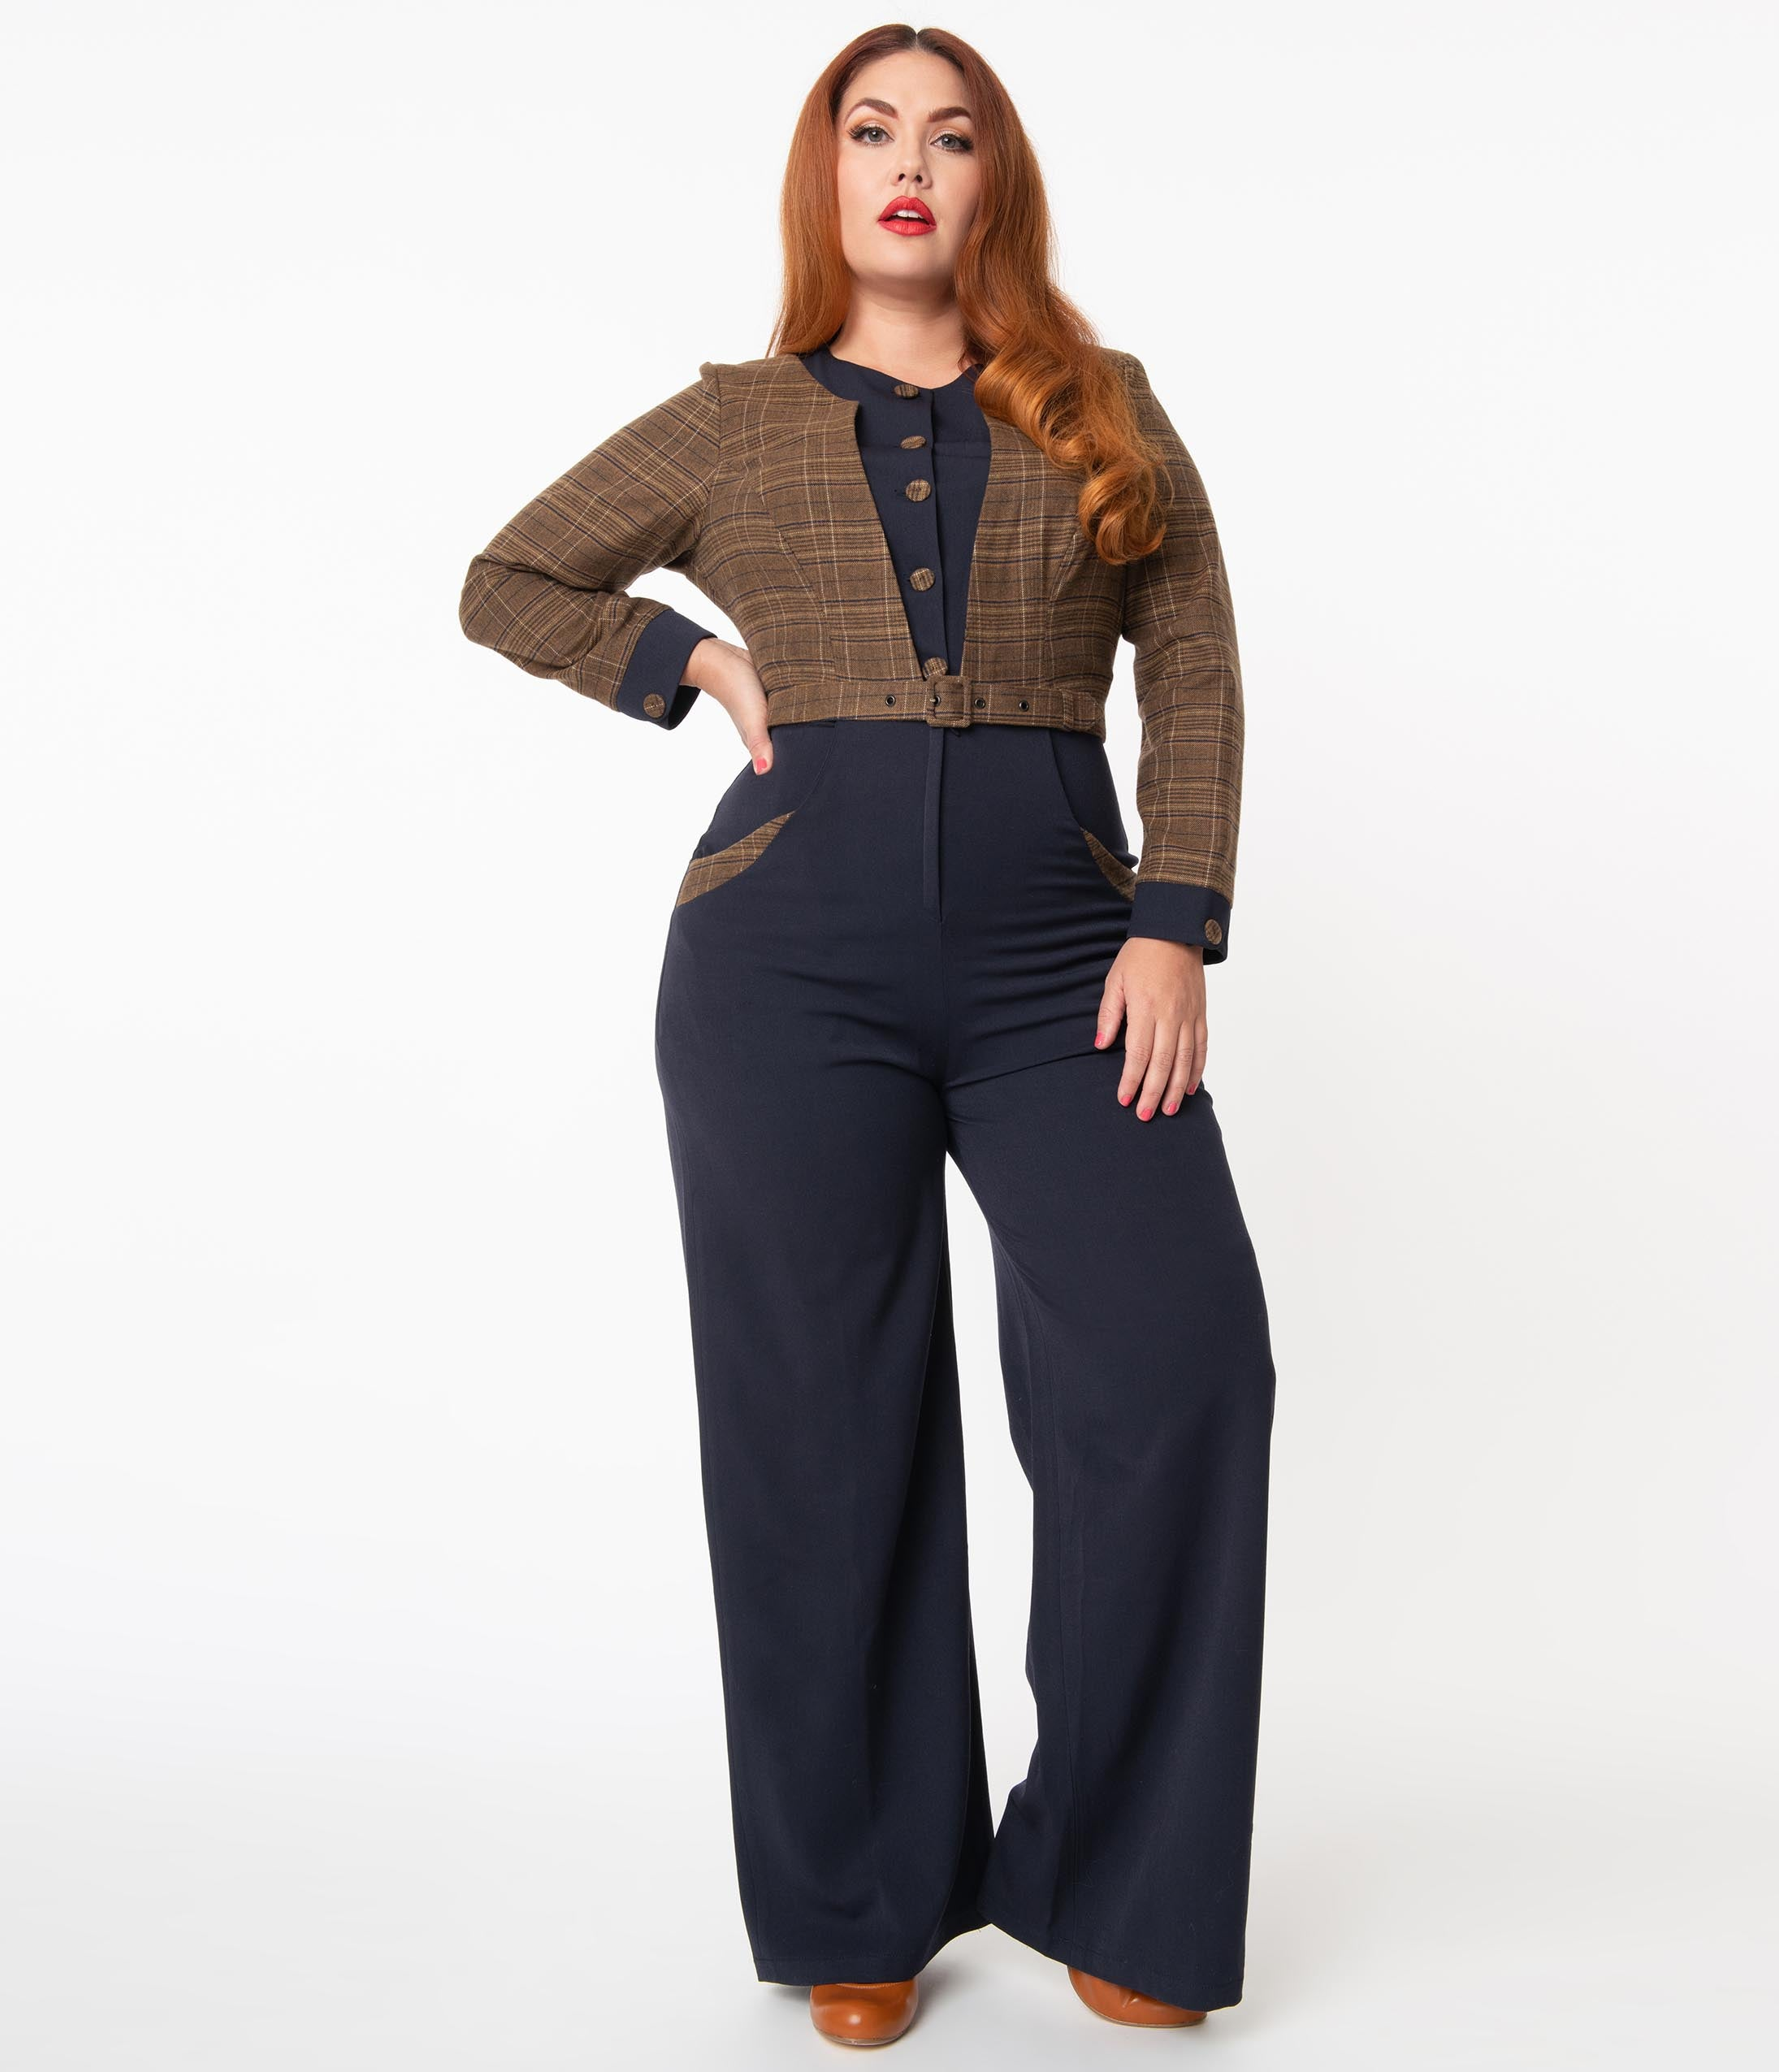 Vintage Overalls 1910s -1950s History & Shop Overalls Miss Candyfloss Plus Size Navy  Brown Plaid Melanie-Lee Jumpsuit $188.00 AT vintagedancer.com